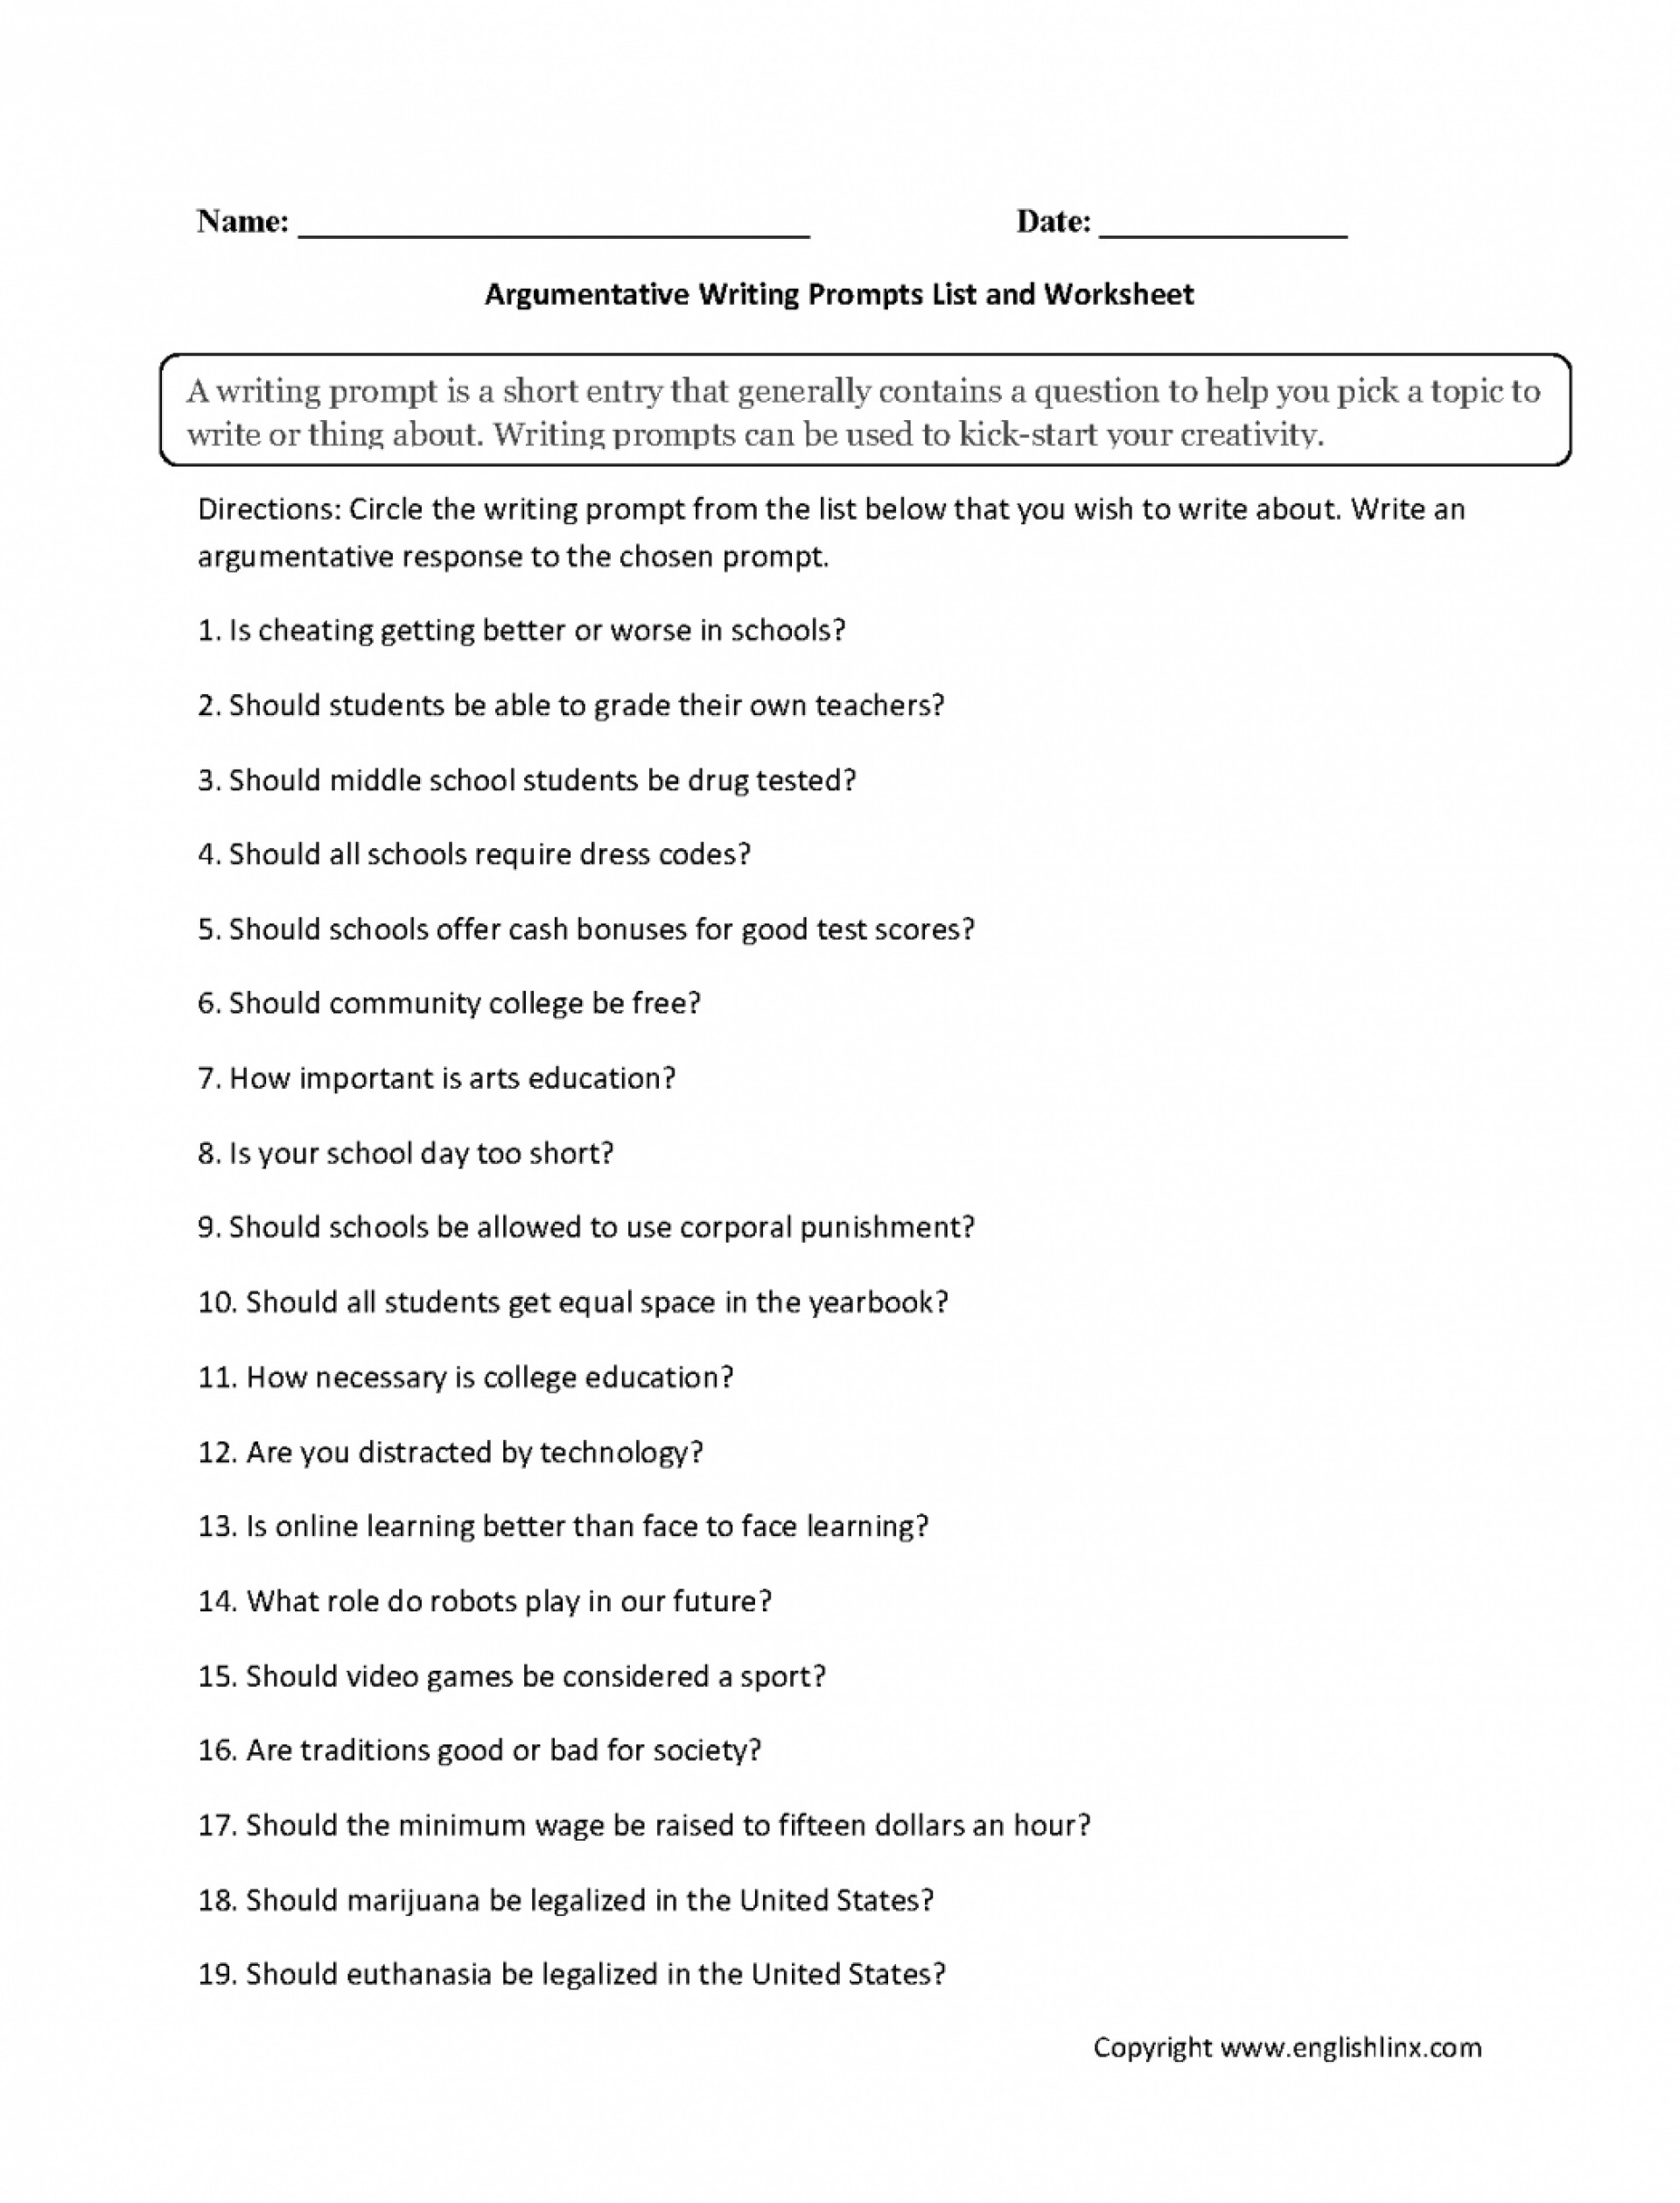 002 Essay Example Argument Prompts Goal Blockety Co Argumentative Topics Writing List Work For High School Subjects About Animals On Racism College Sports Middle Rare 7th Graders Pdf 1920